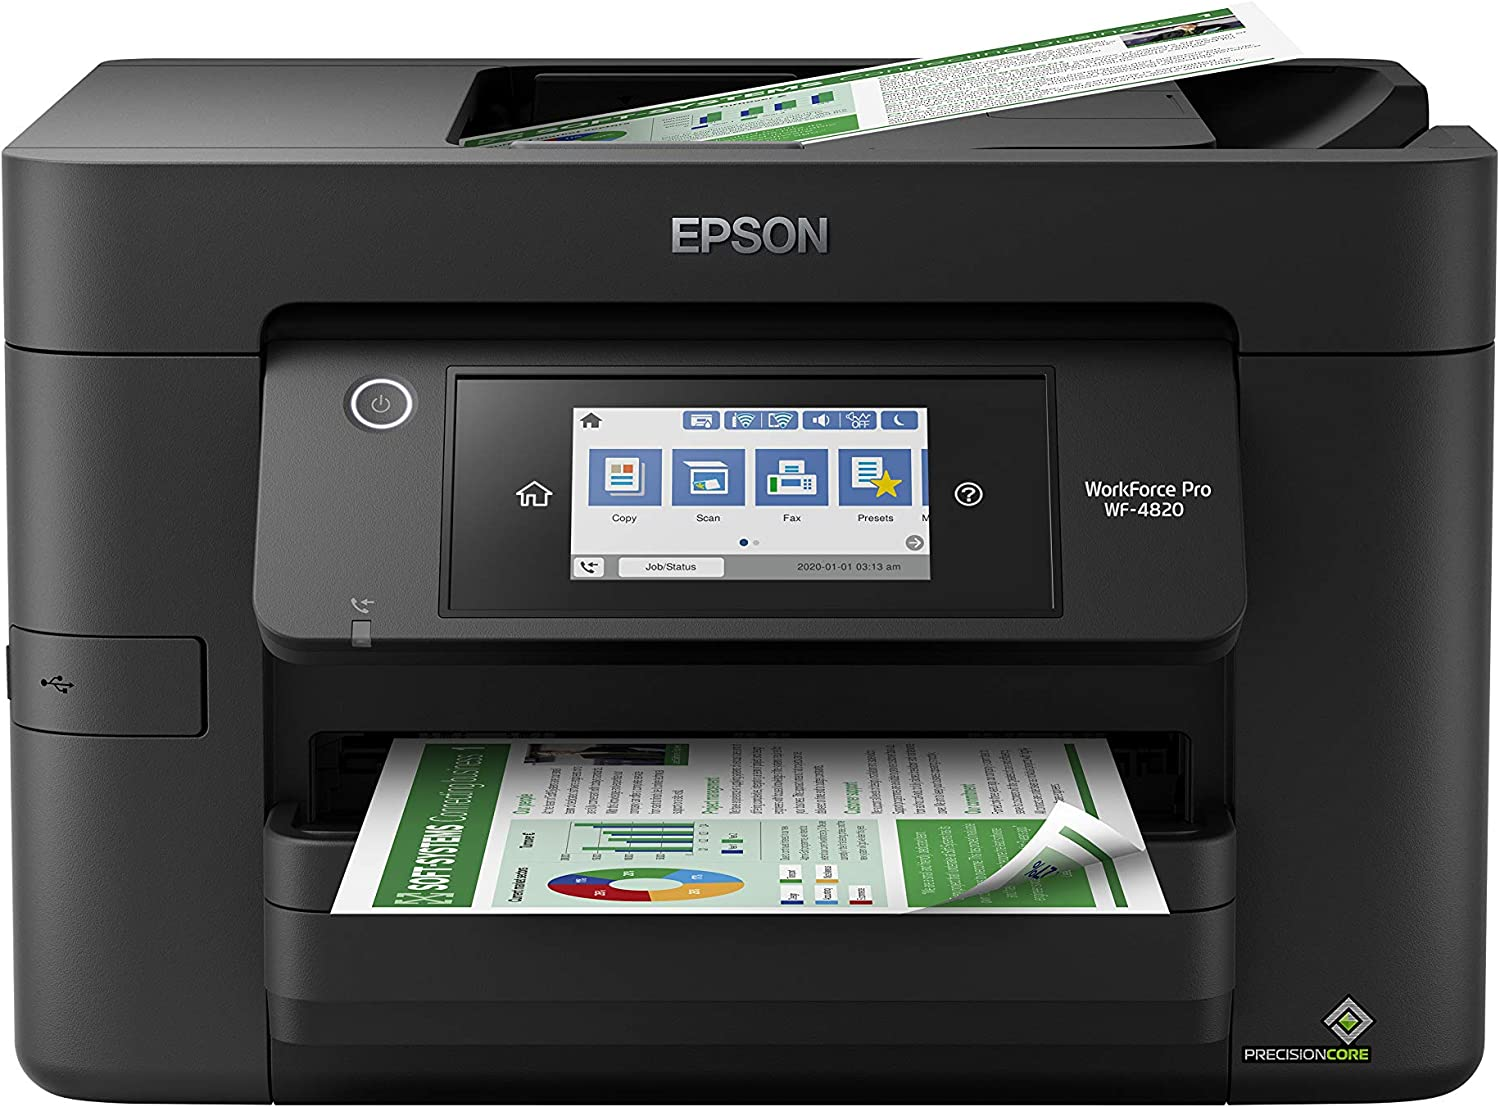 "Epson Workforce Pro WF-4820 Wireless All-in-One Printer with Auto 2-Sided Printing, 35-Page ADF, 250-sheet Paper Tray and 4.3"" Color Touchscreen, Works with Alexa, Black, Large"